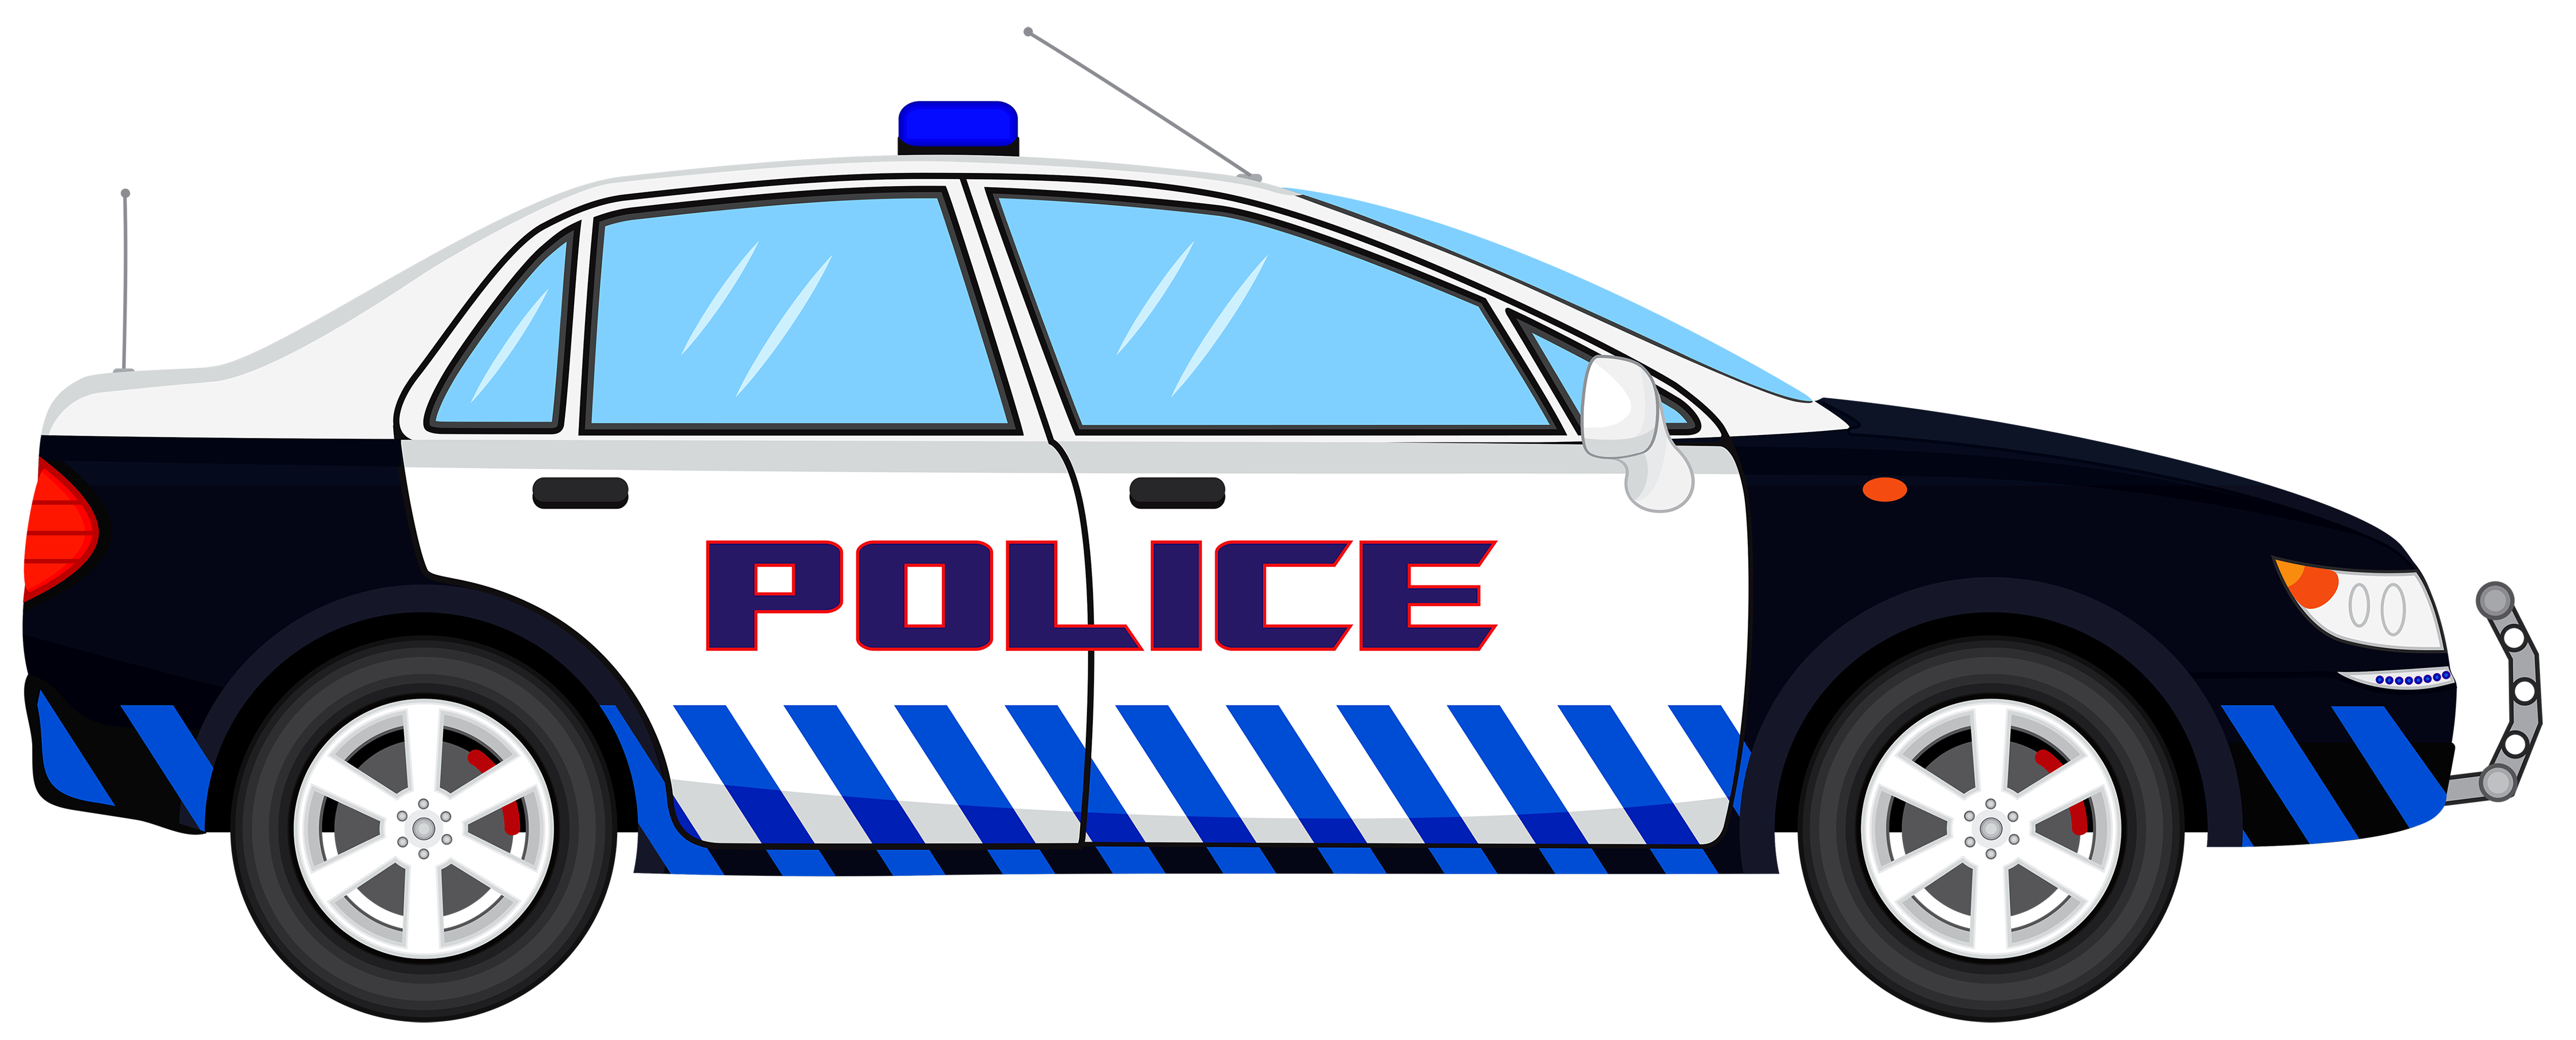 Police car clipart clipart images gallery for free download.